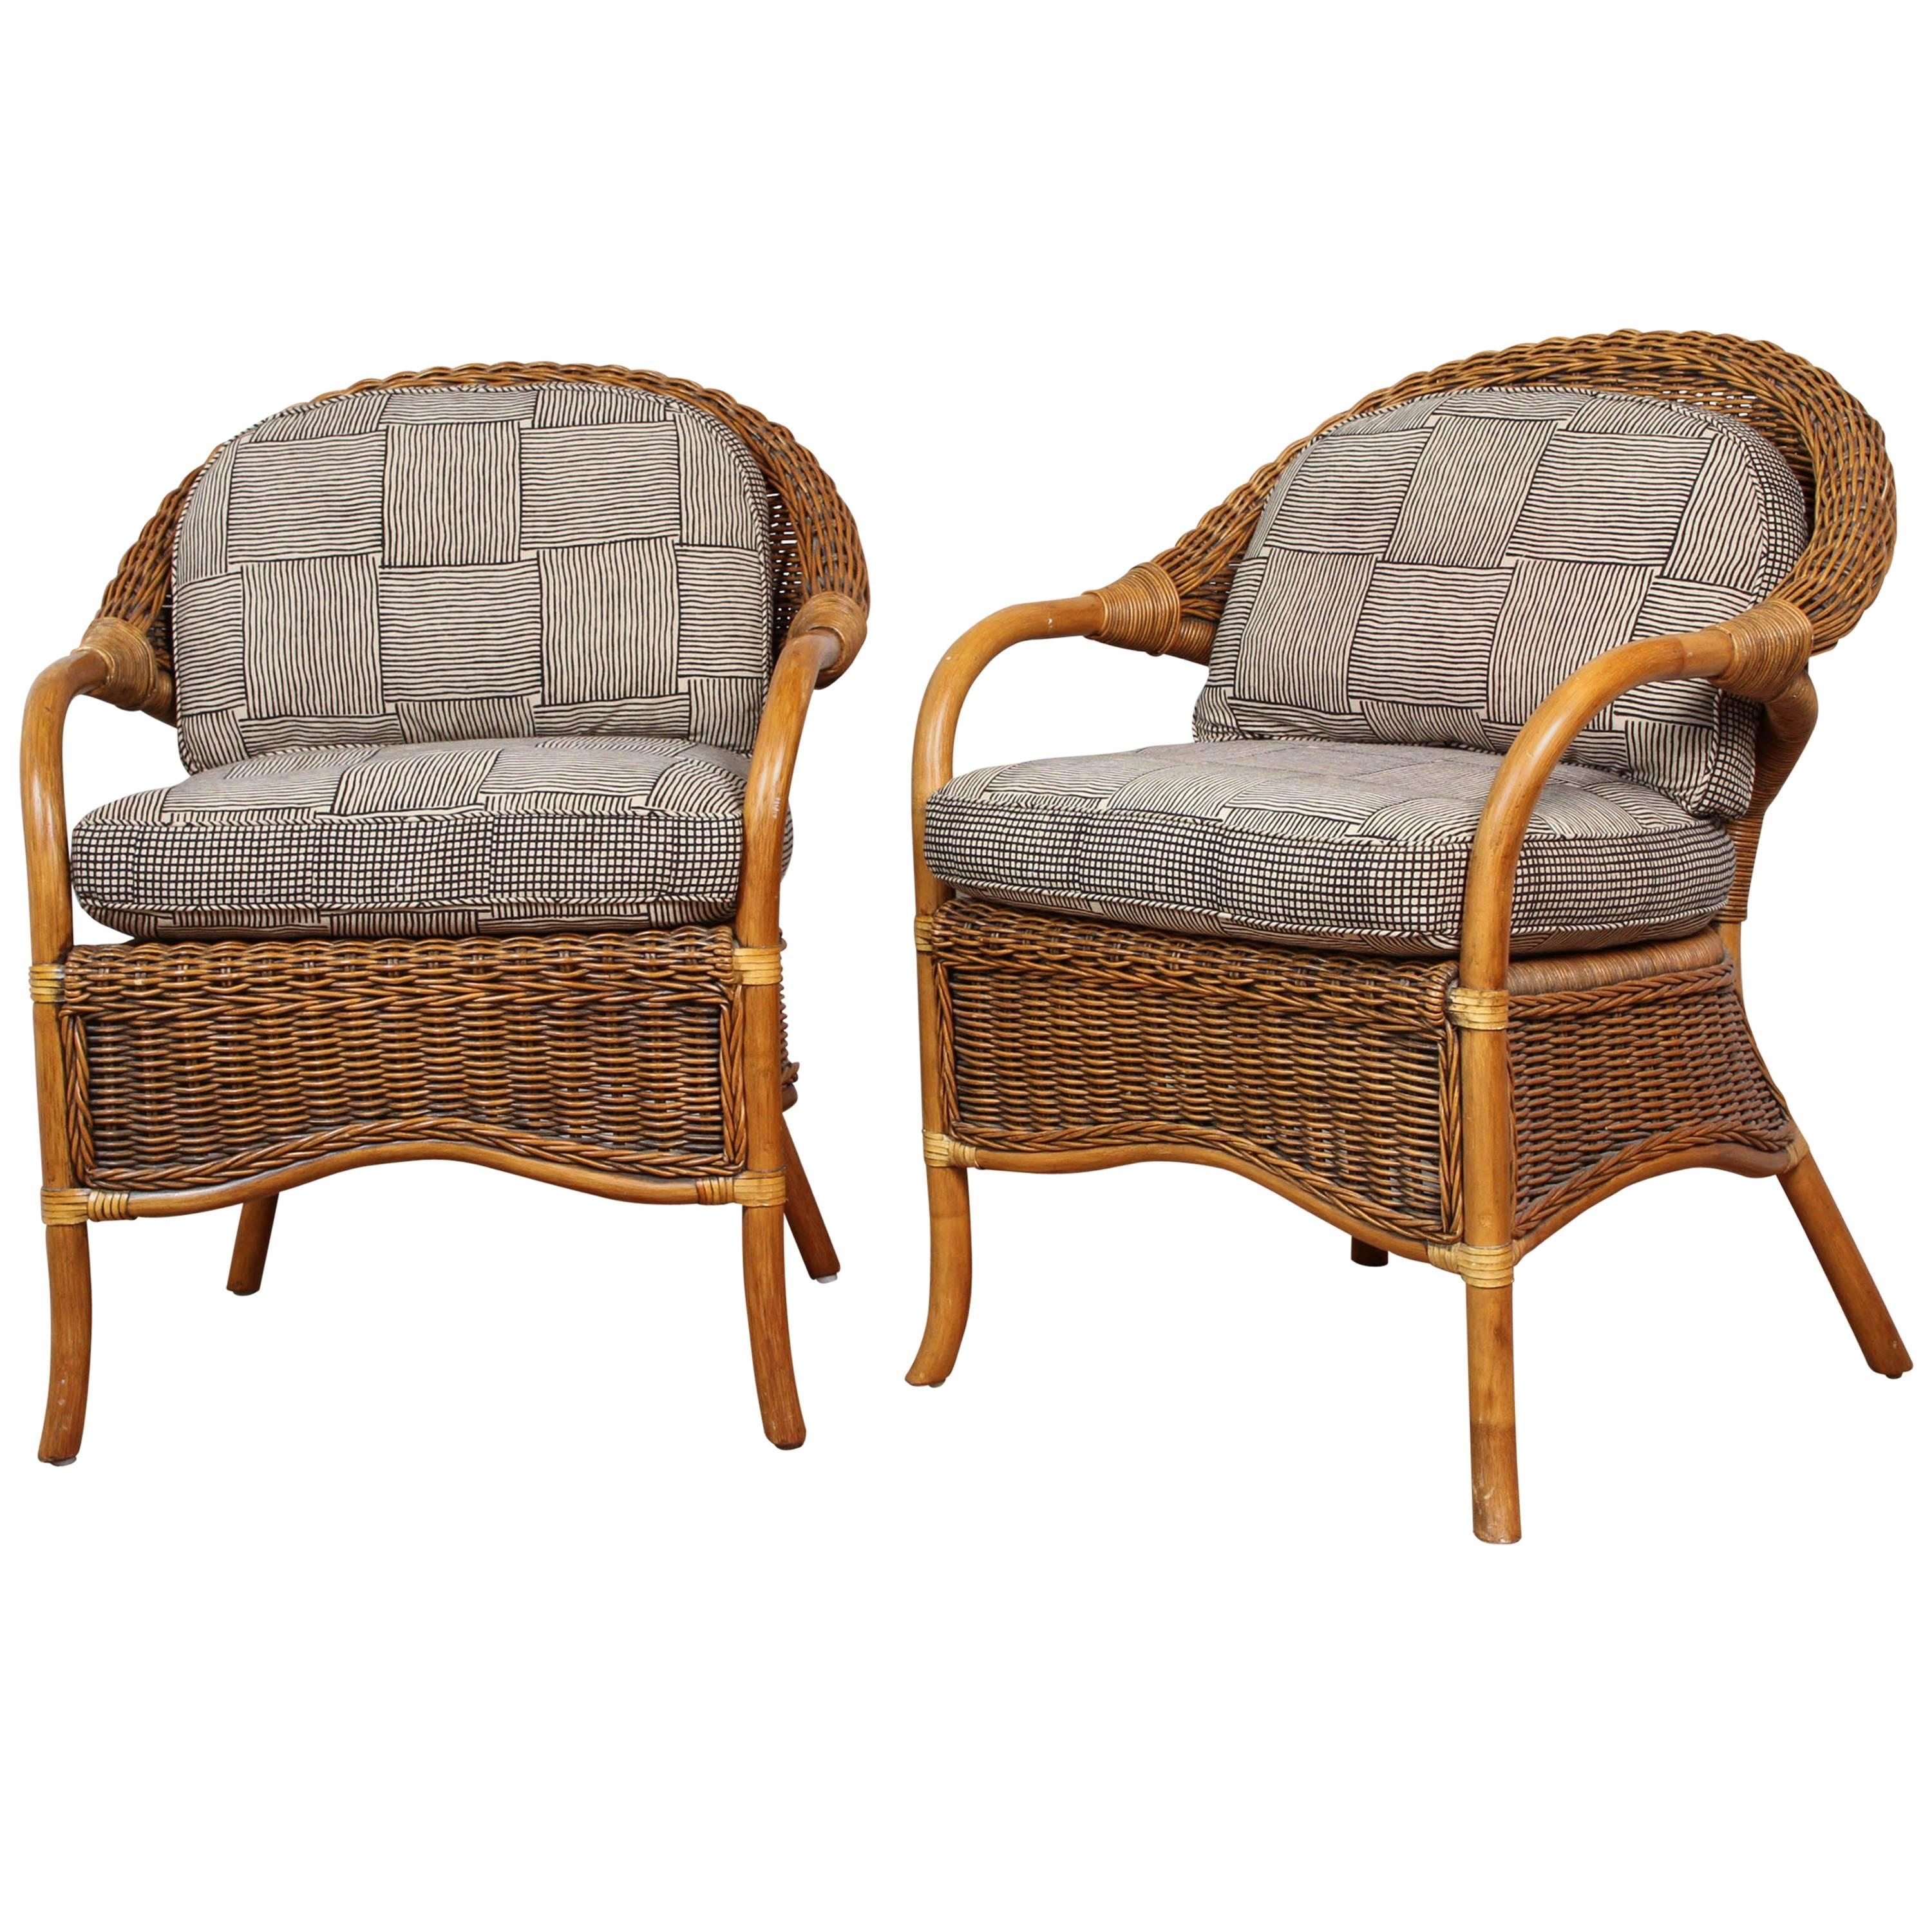 Rattan Chairs Upholstered In Indian Block Print Cotton For Sale At